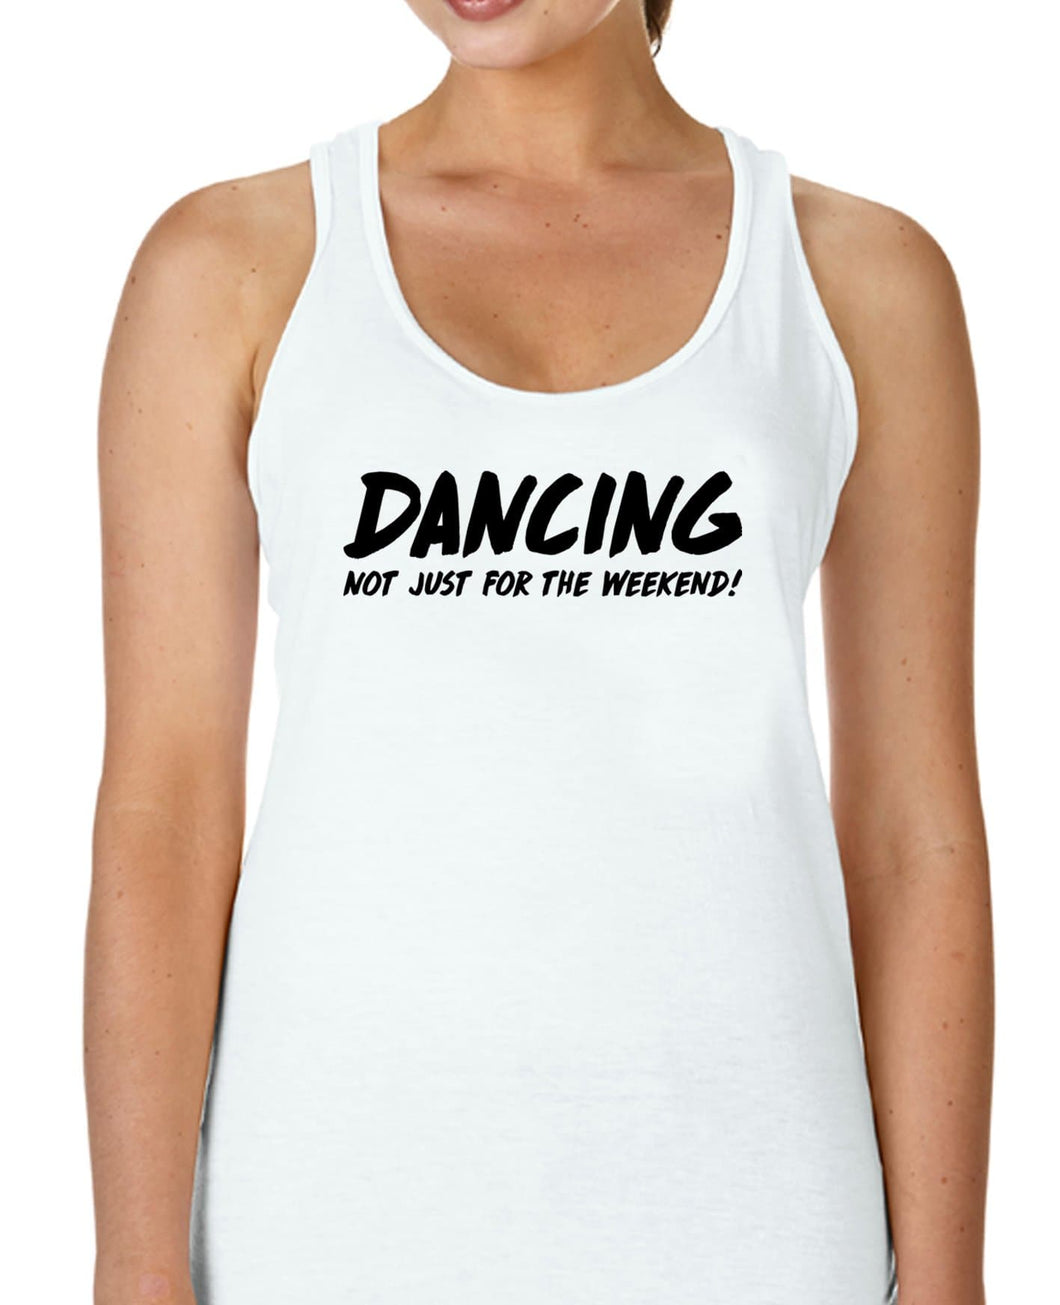 DANCING Not just for the weekend! - Racerback - SoreTodayStrongTomorrow